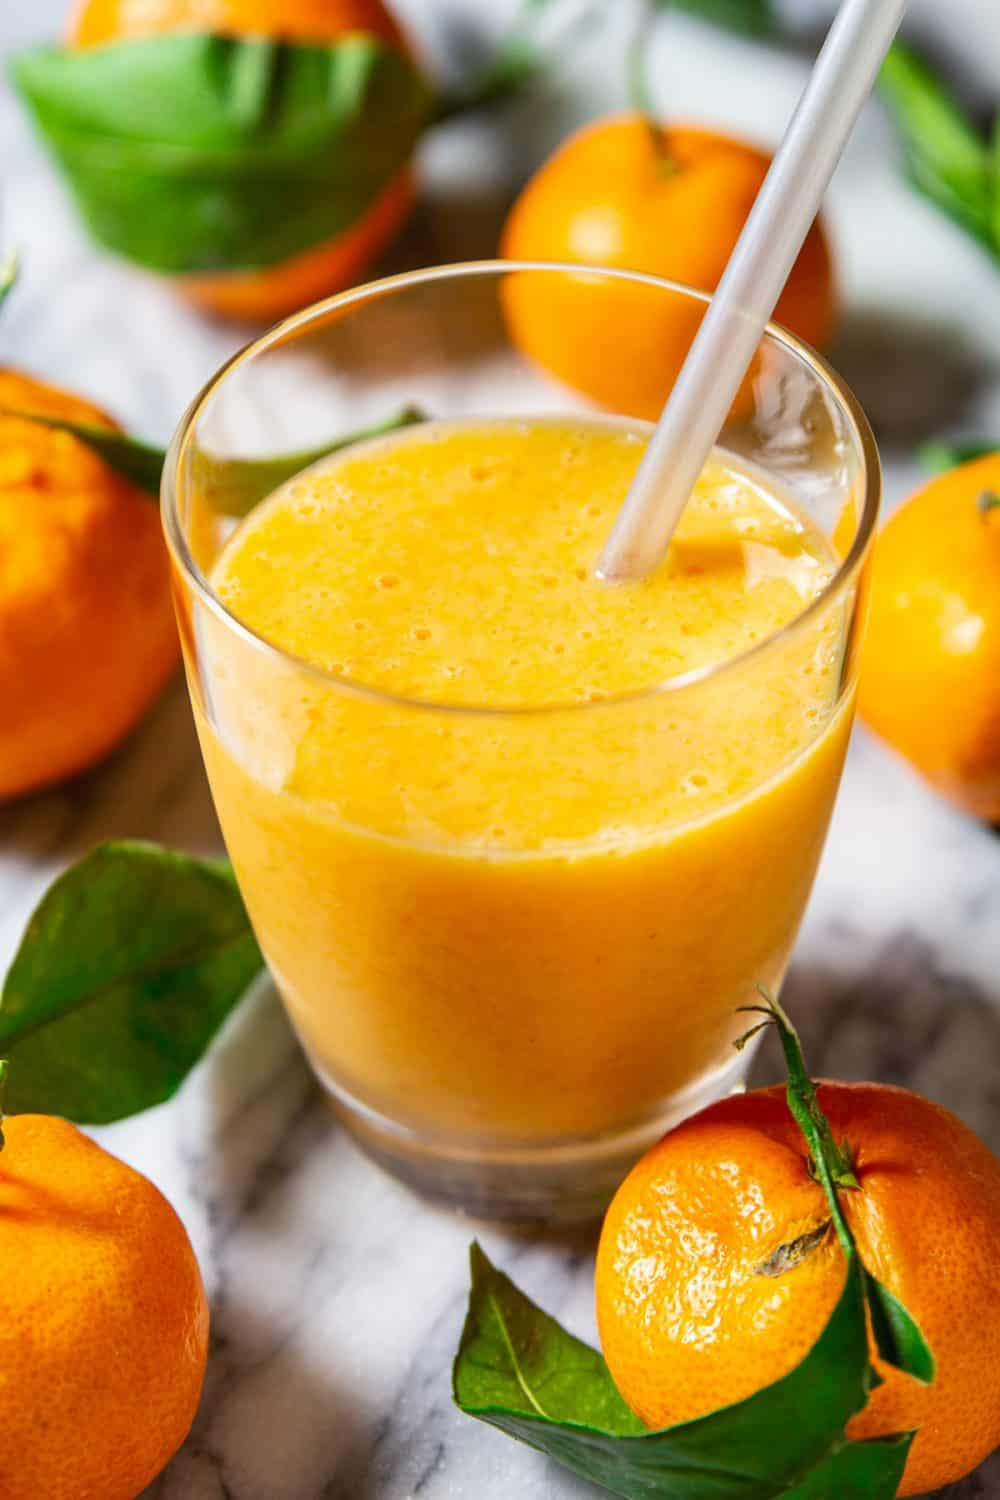 Up close image of mandarin and banana smoothie recipe in a small glass with straw on a marble counter surrounded by fresh manadarins